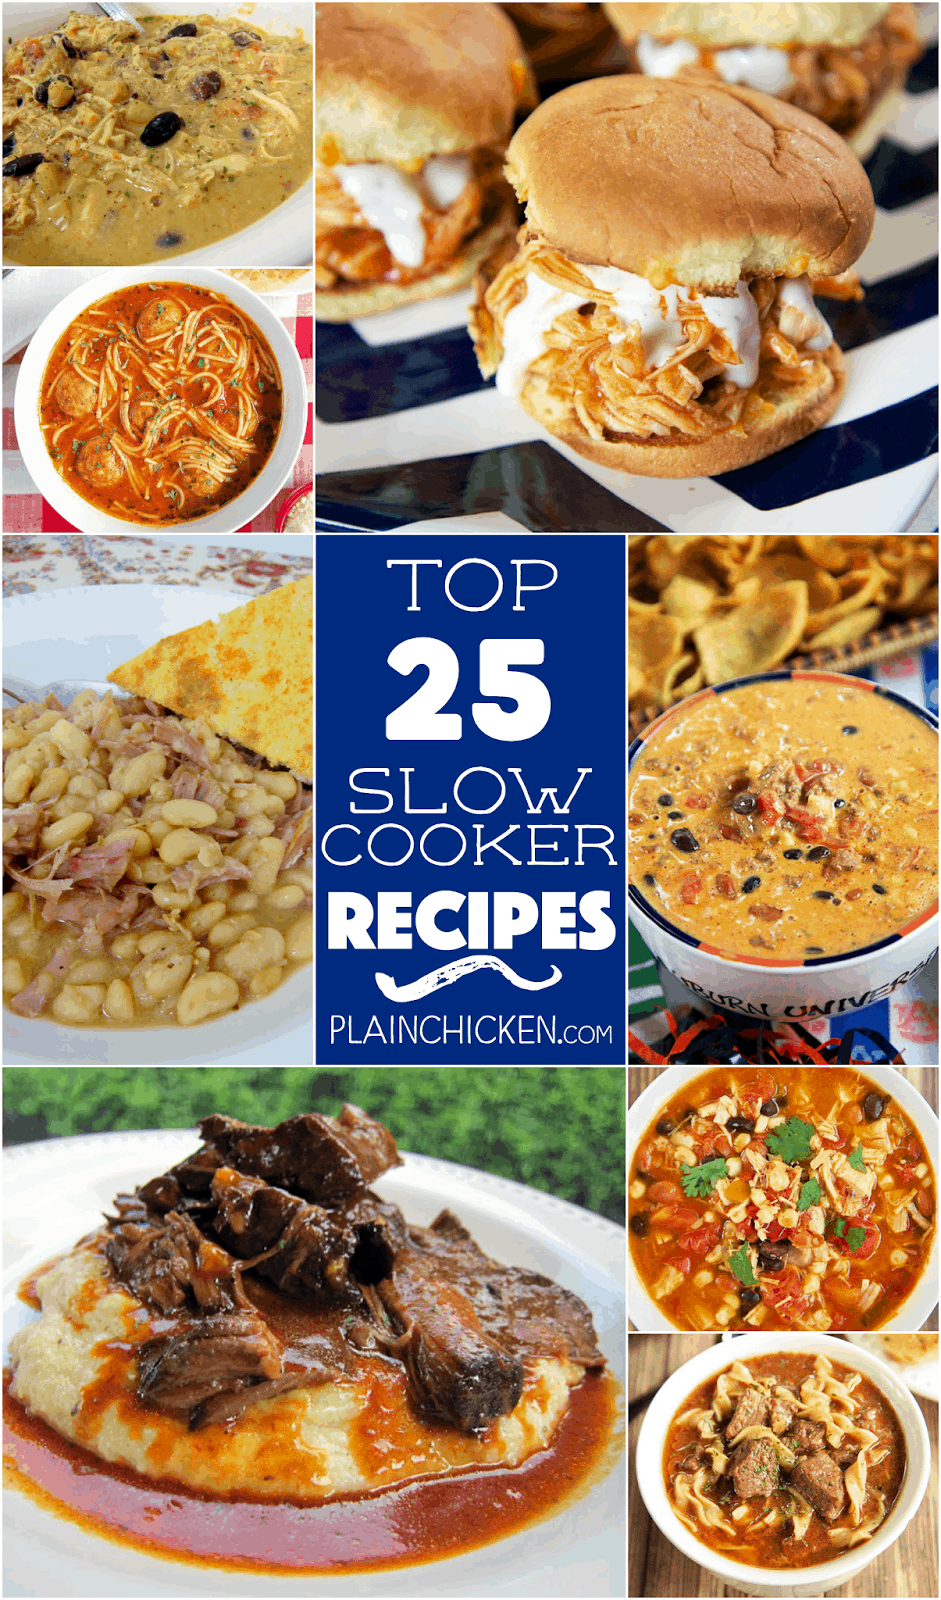 Top 25 Slow Cooker Recipes - great list of recipes! Soups, stews, chicken, dips, even bread! Keep this list handy for quick and easy meal planning.